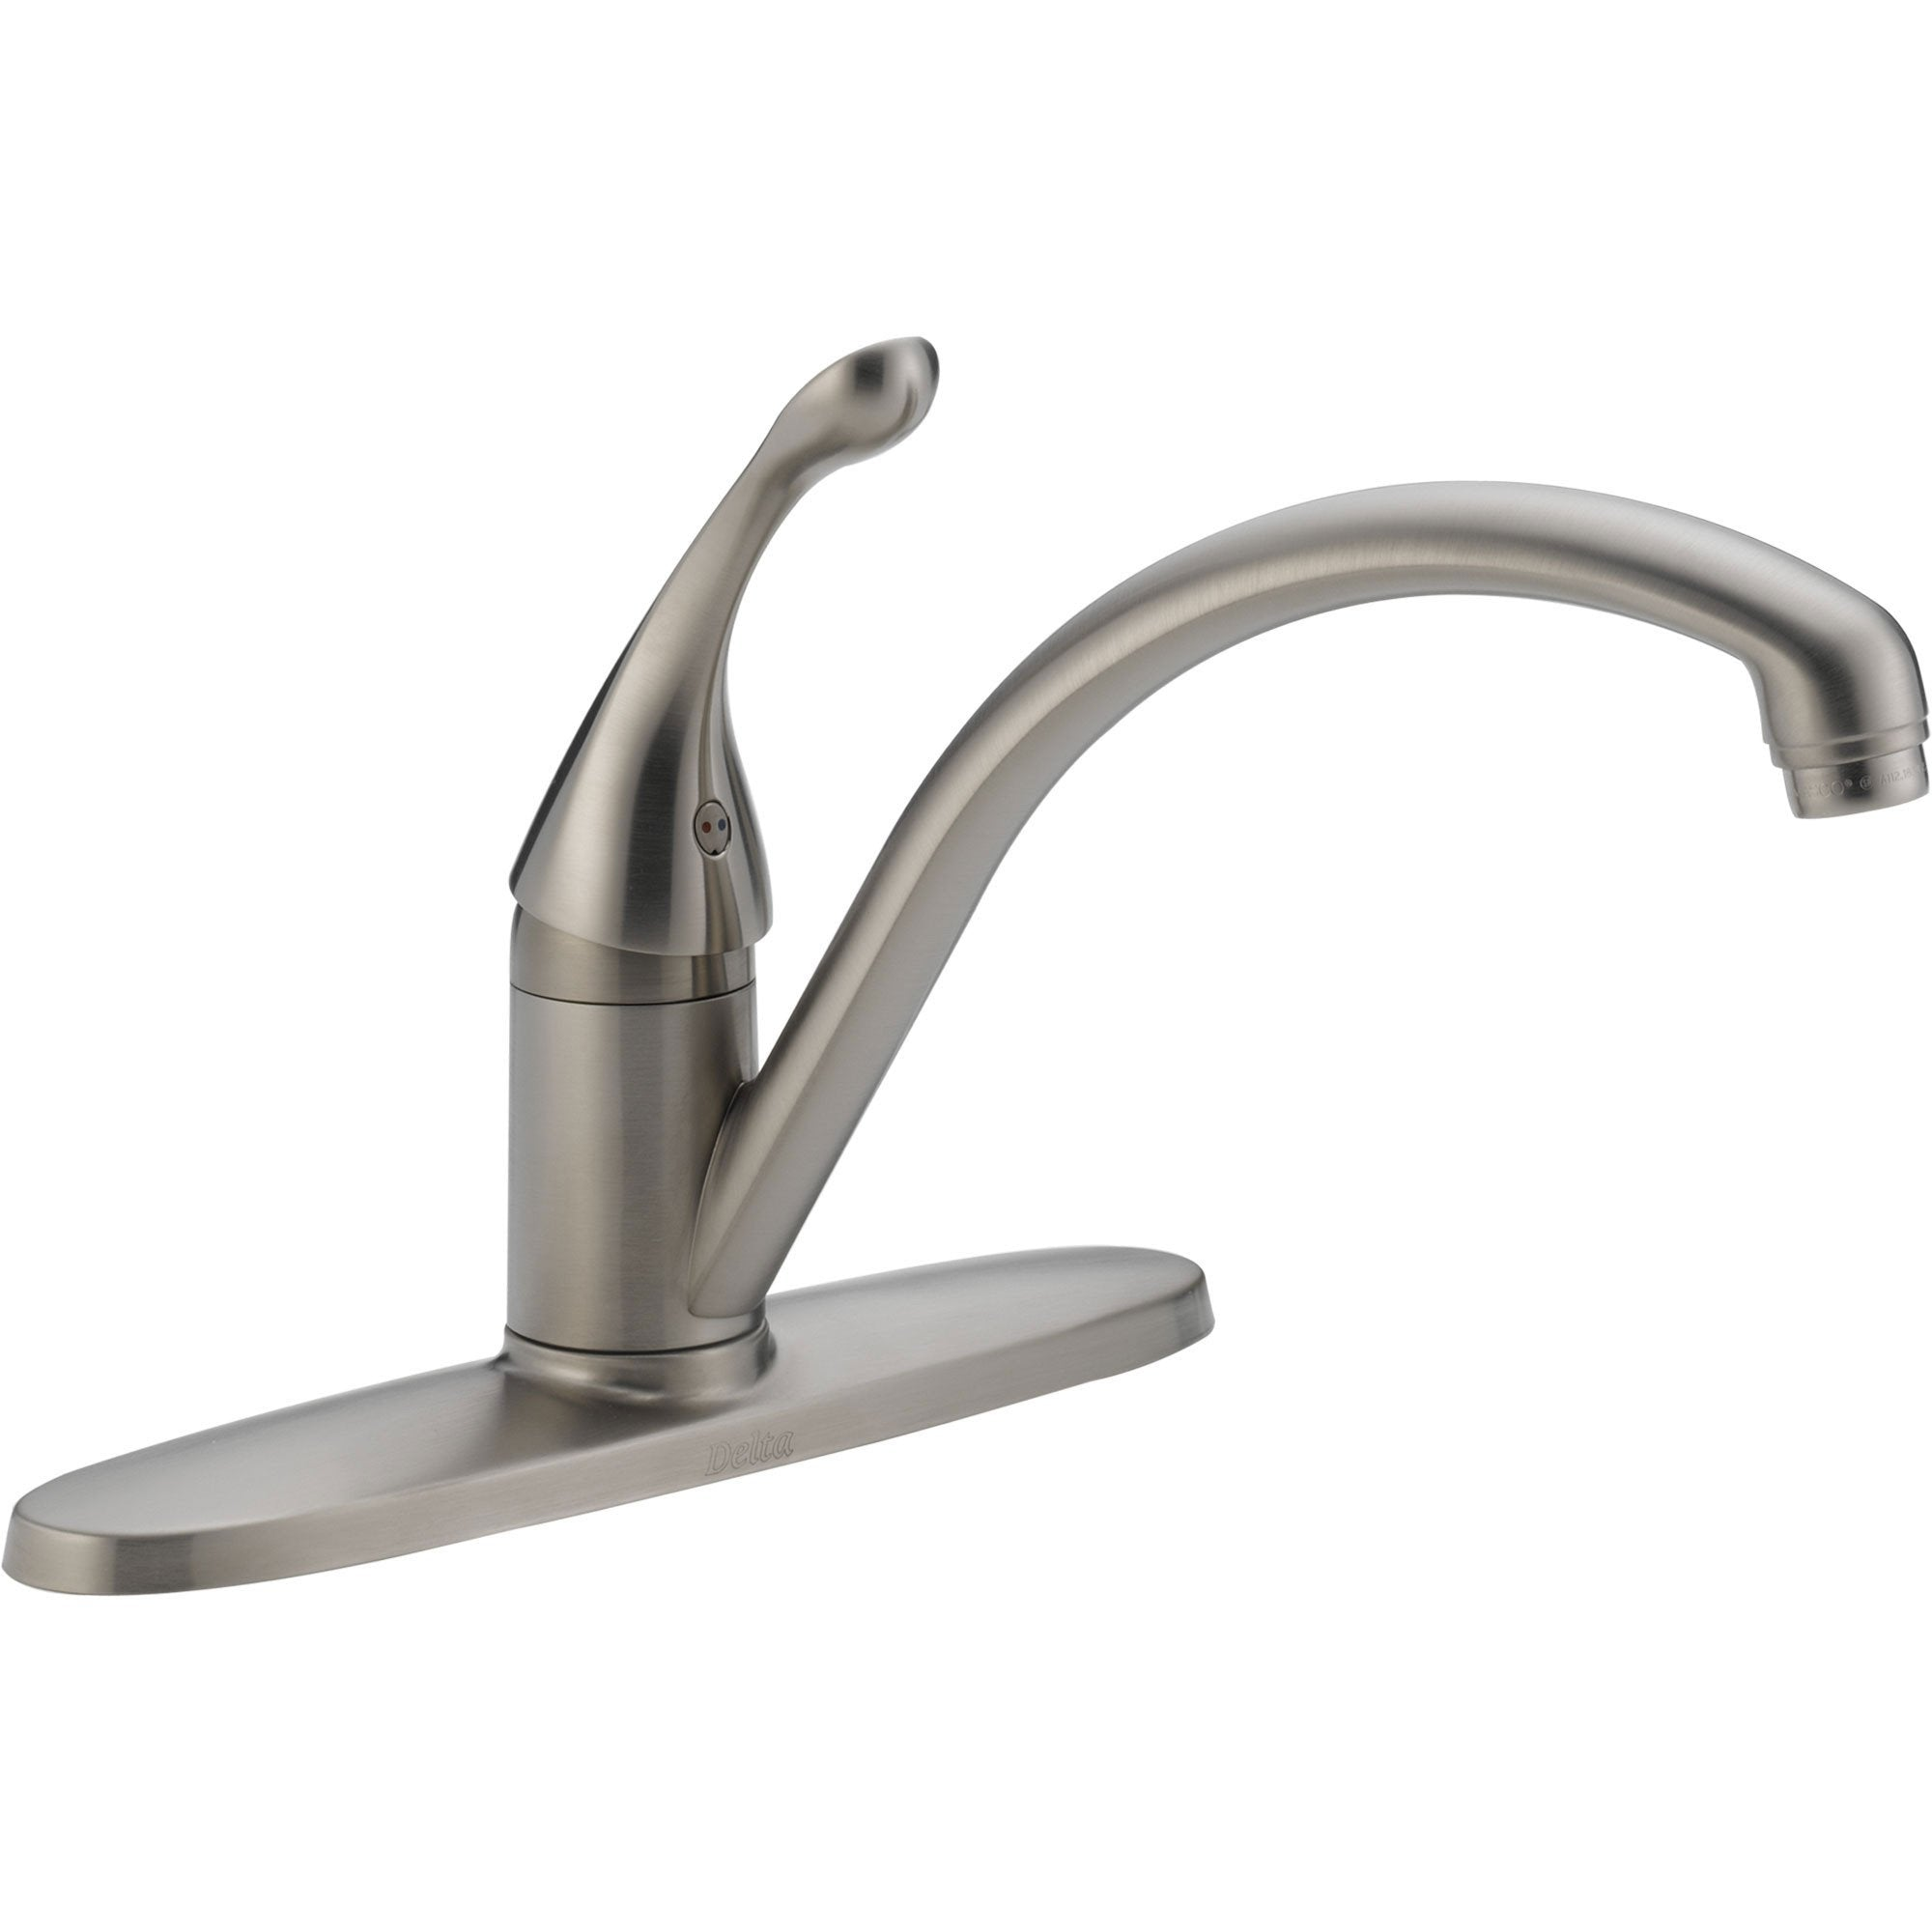 Delta Collins Lever Single Handle Kitchen Faucet in Stainless Steel 465275